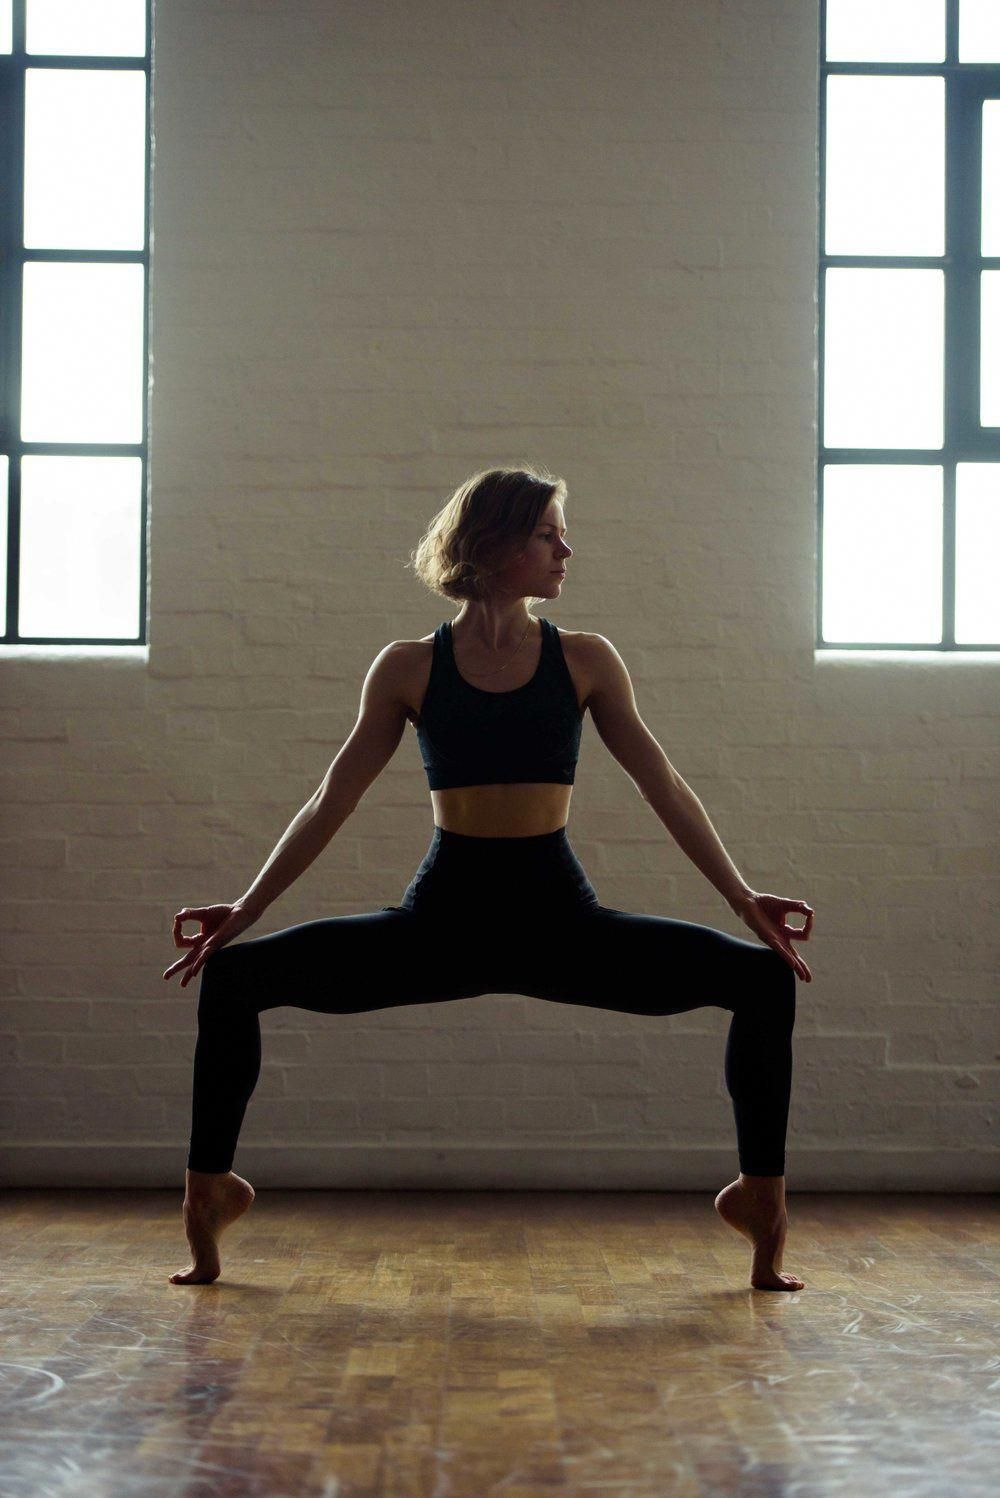 Pin by Kevin Kamins on gesture in 2020 Yoga photoshoot